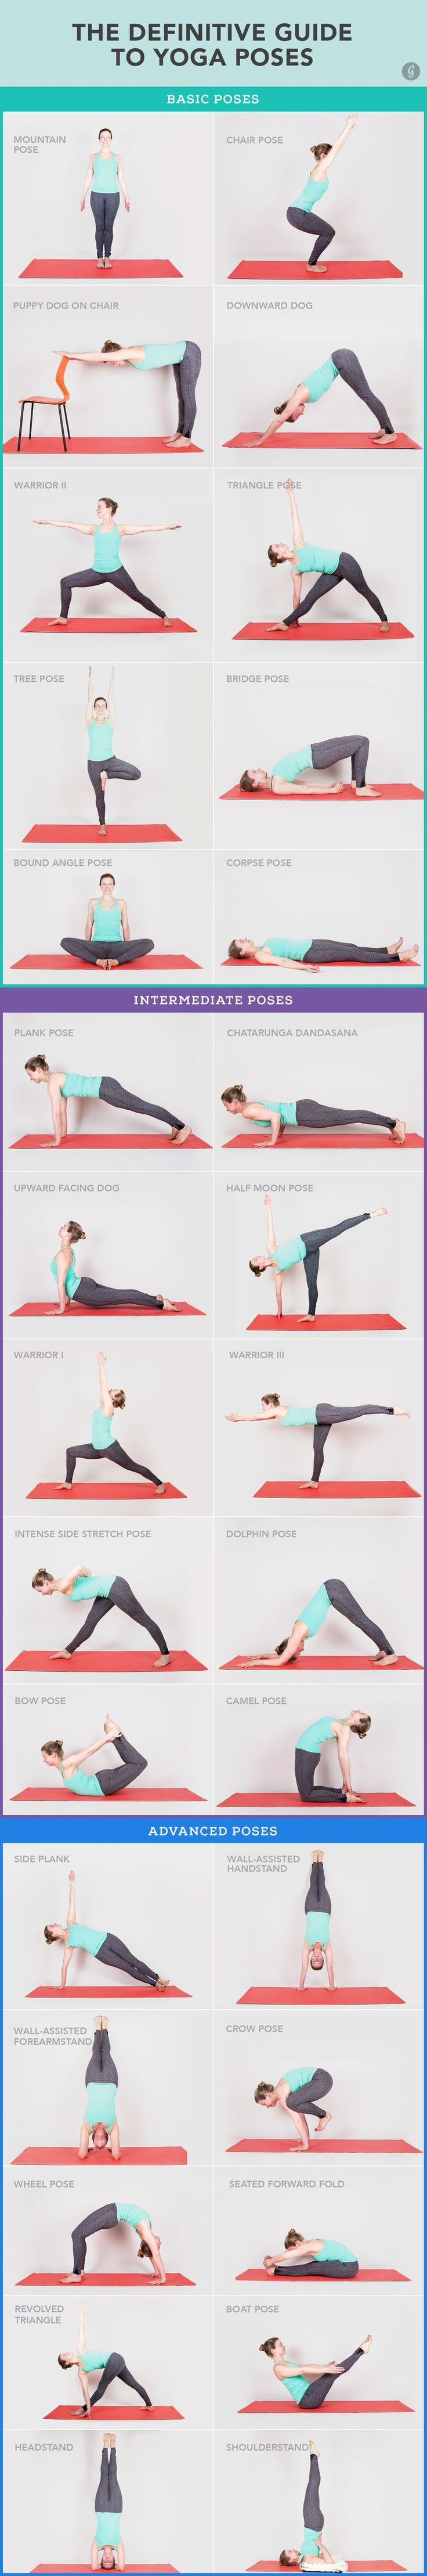 30 Yoga Poses You Really Need To Know with .gifs and explanations of each pose if you click through.